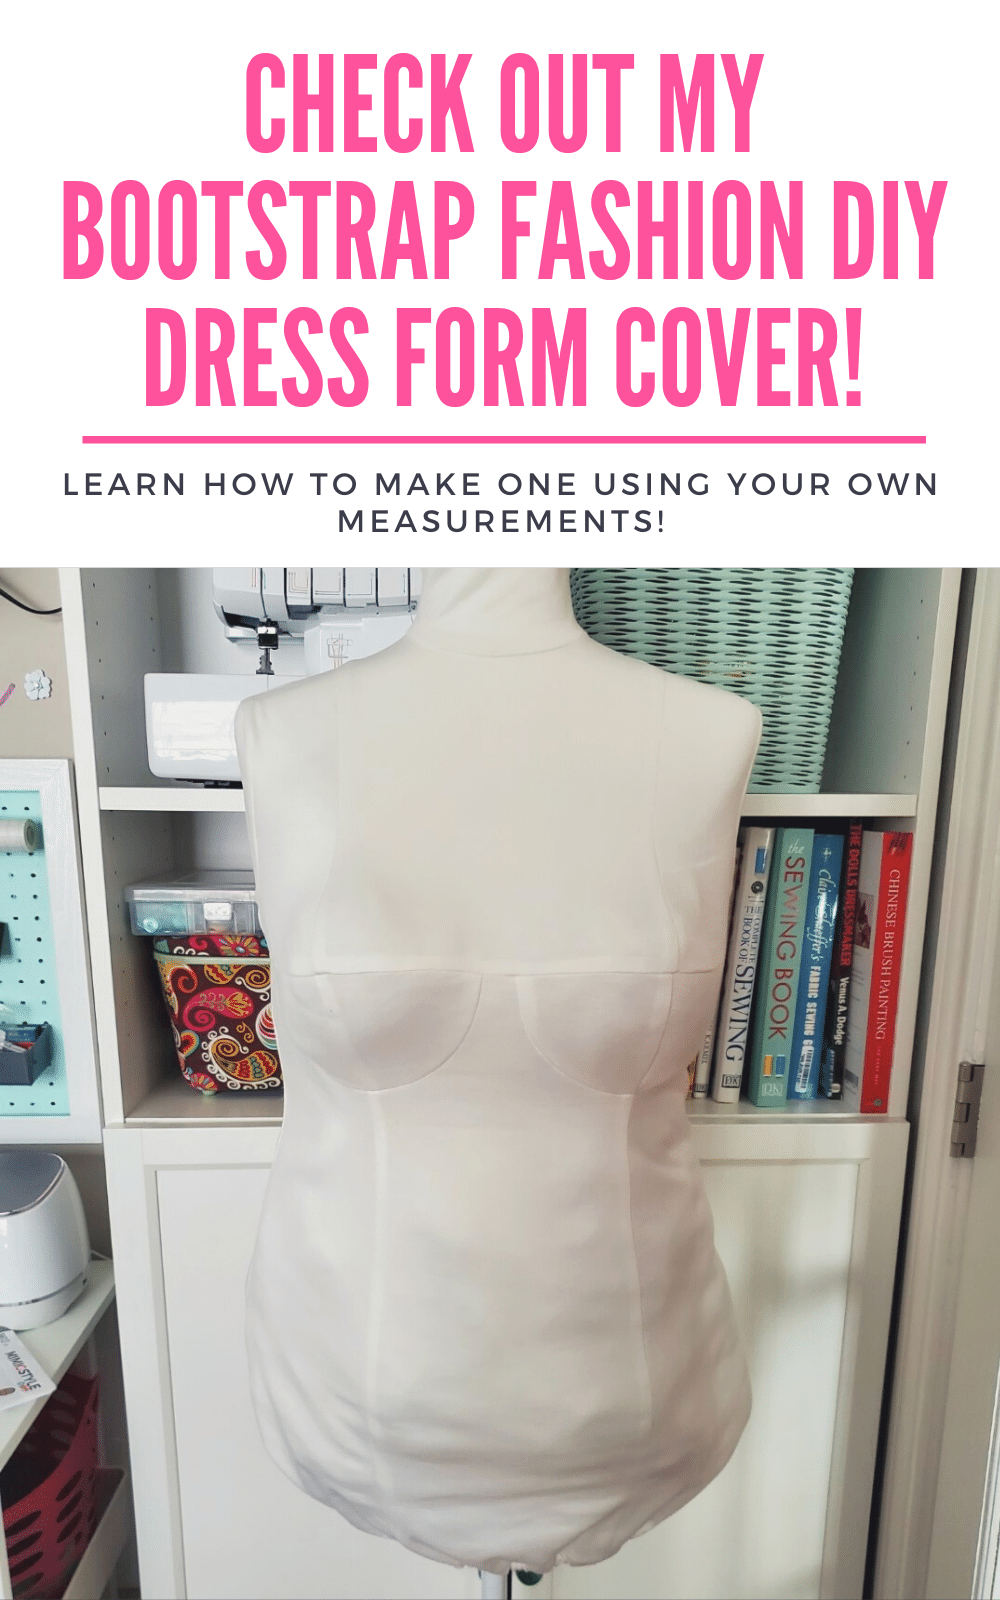 bootstrap fashion diy dress form review